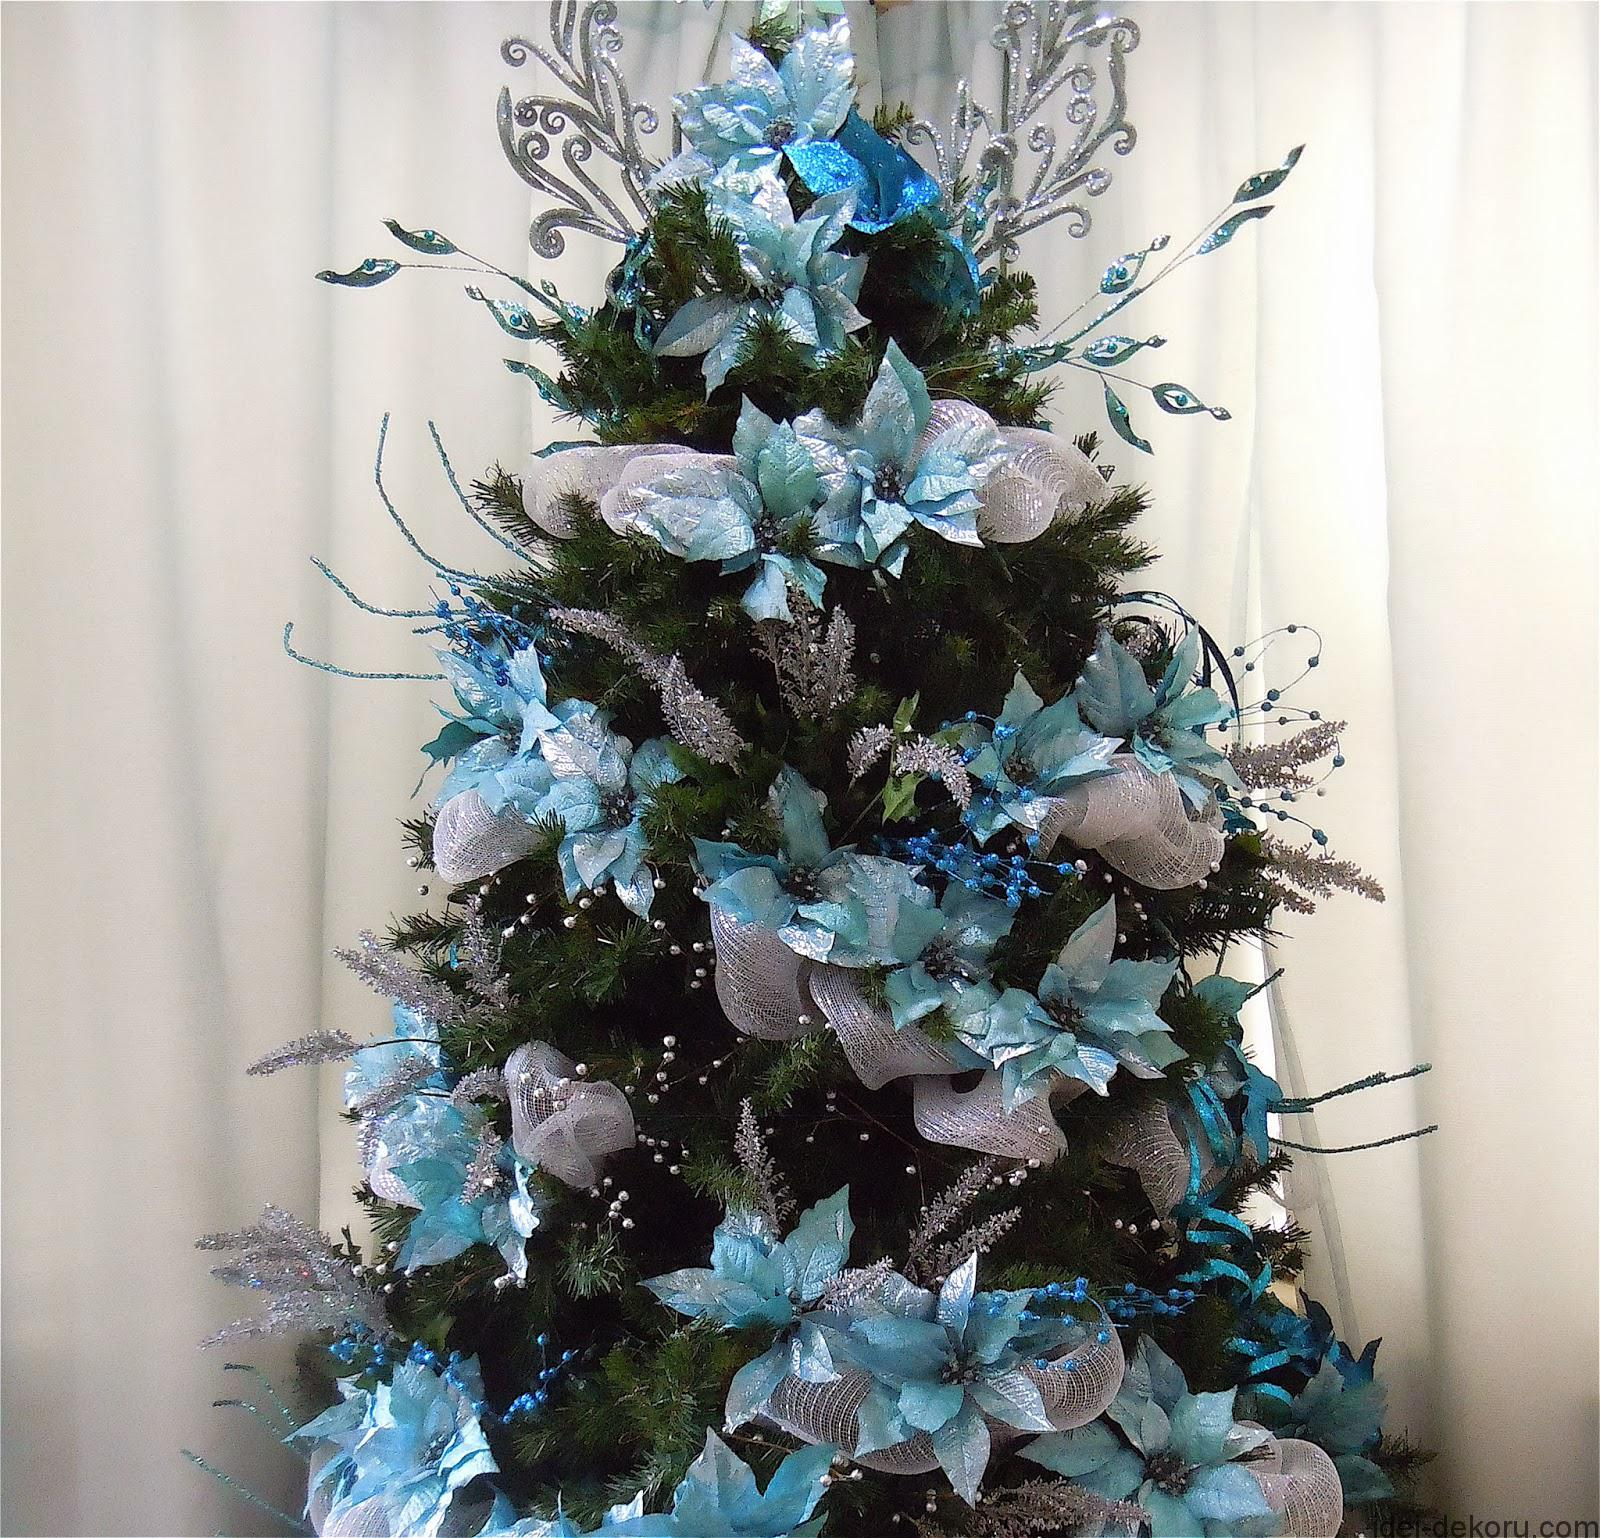 christmas-tree-decorations-blue-silver-white-xdguw4zg